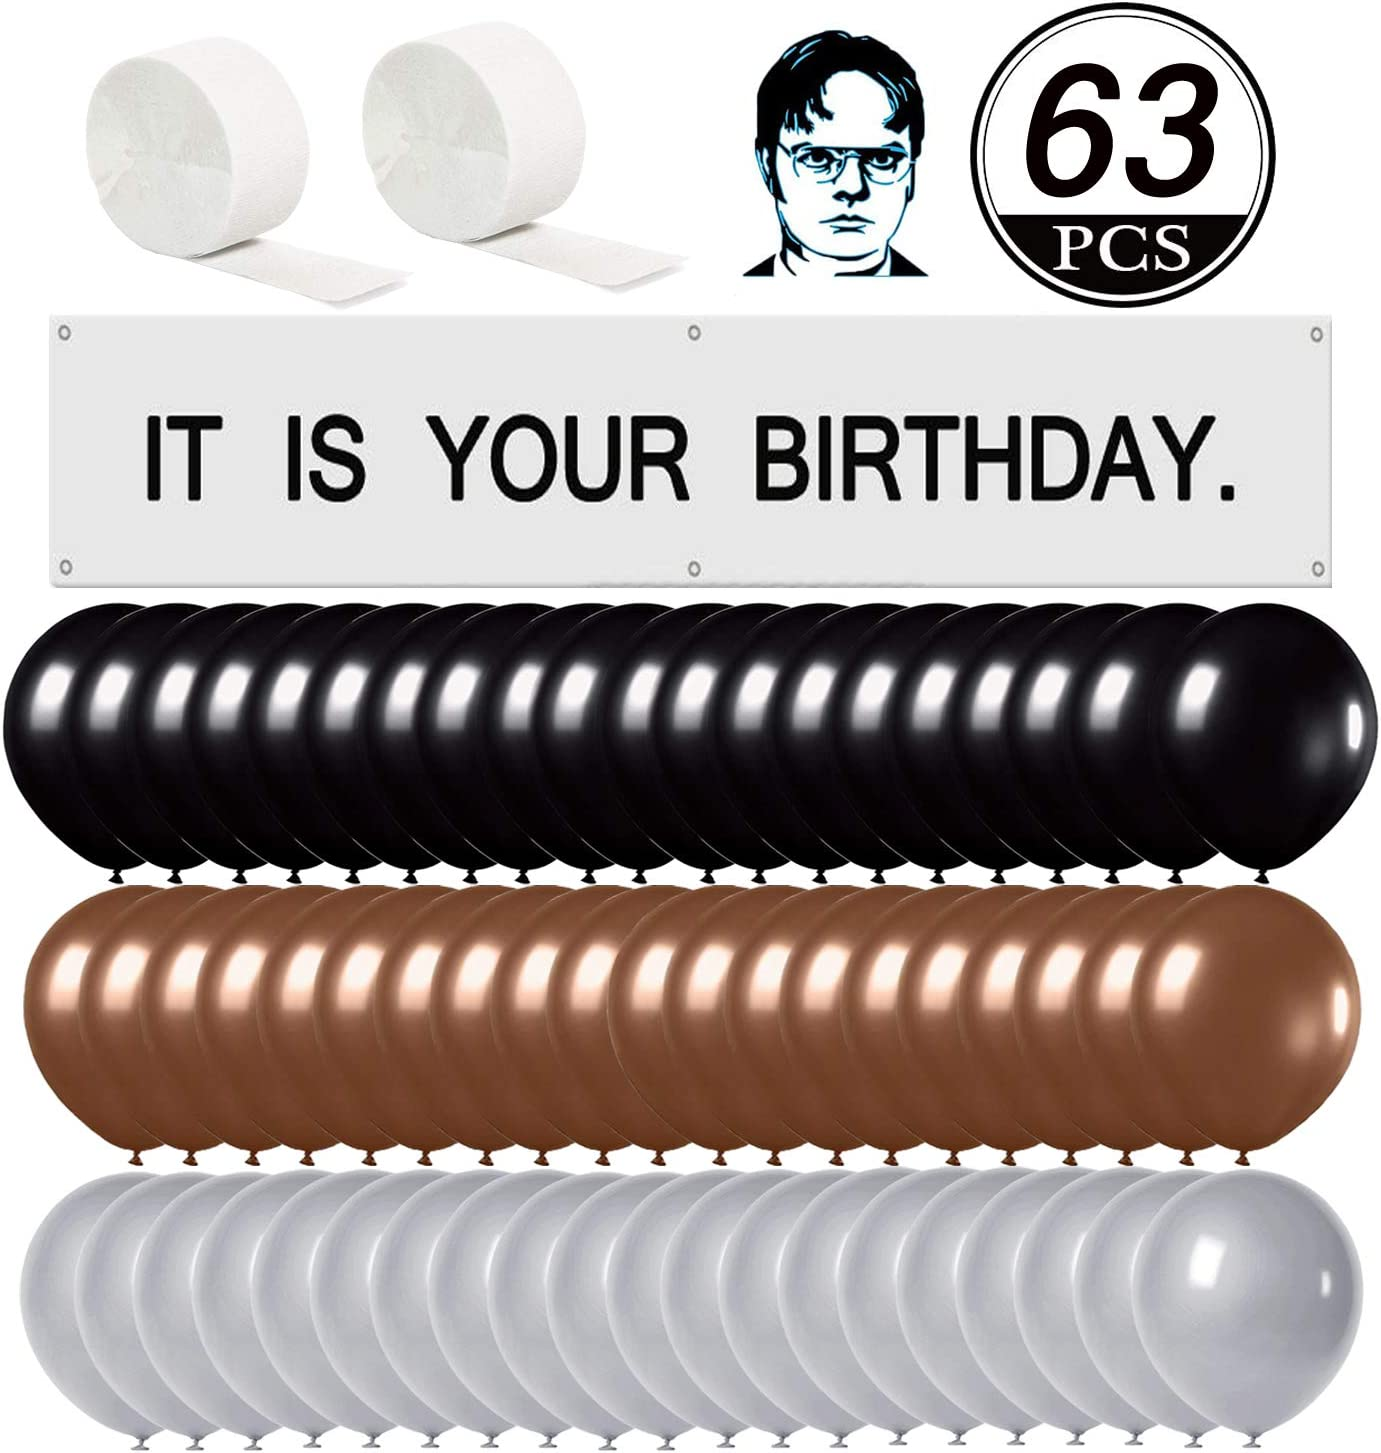 Raiow It is Your Birthday. Banner The Office Birthday Decoration 63 Pcs Set,Brown Black Silver Balloons White Crepe Streamers,The Office Party Merchandise by Dwight K. Schrute